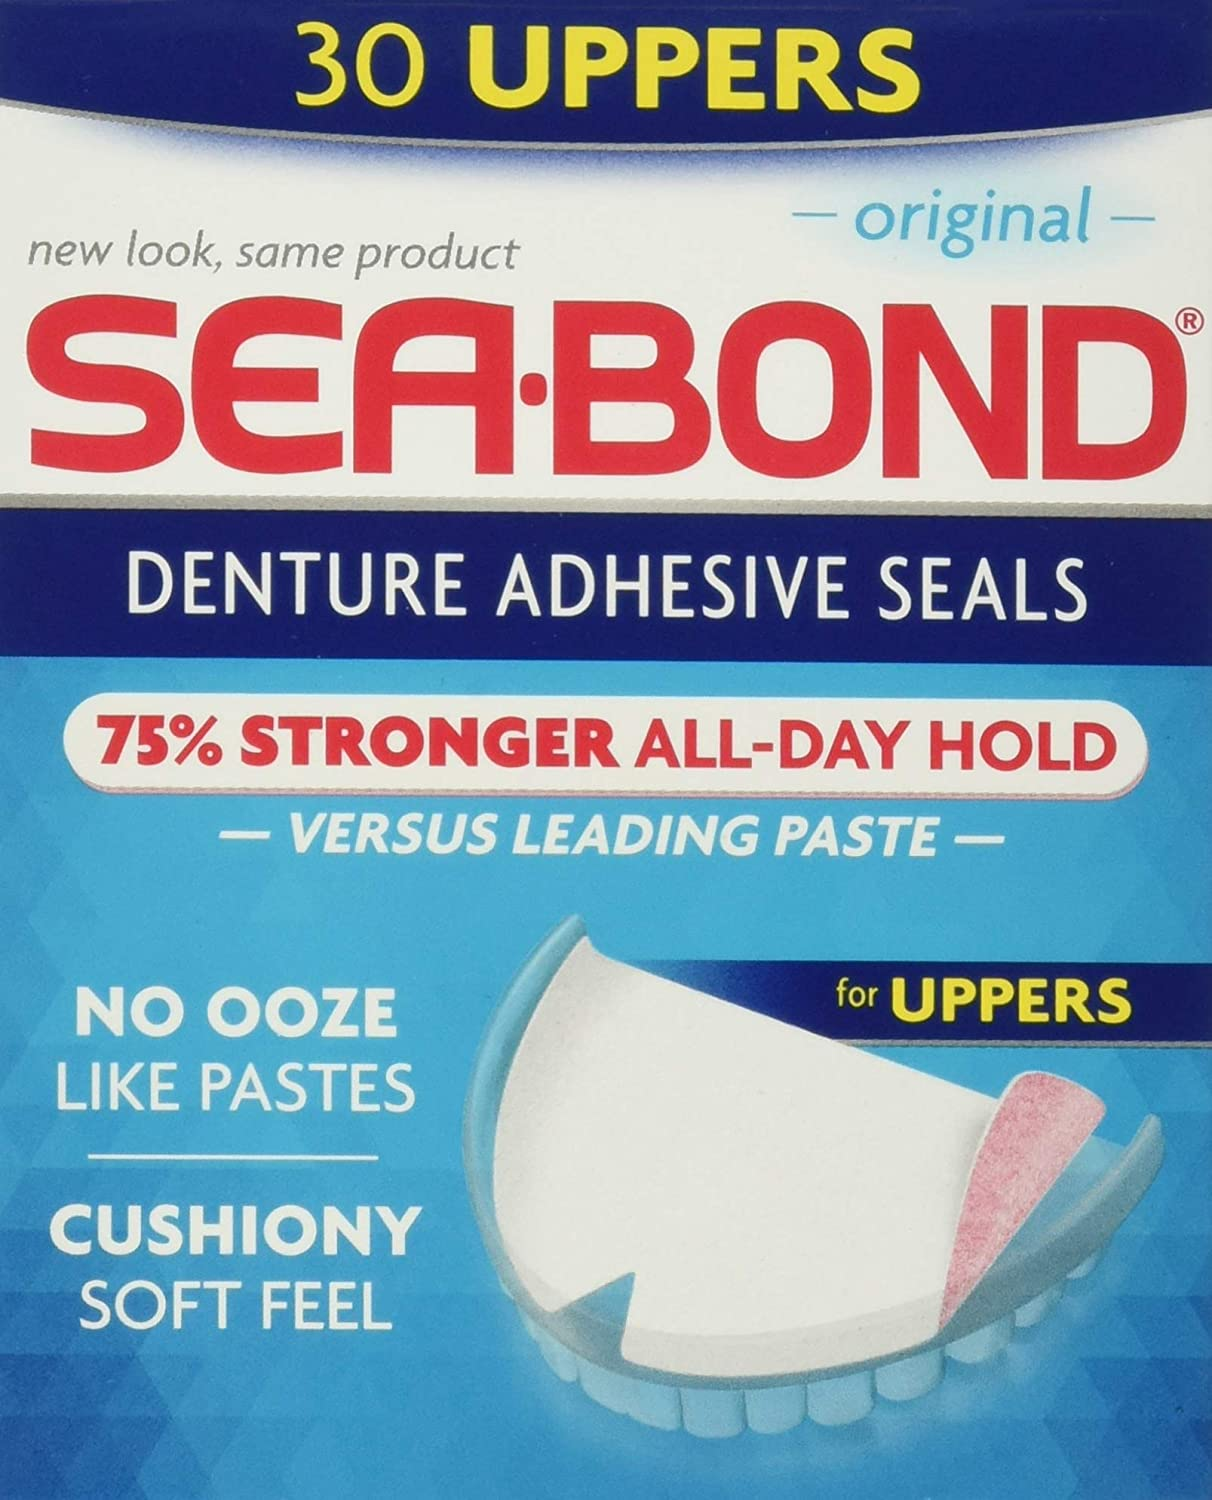 Sea Bond Secure Denture Adhesive Seals, Original Uppers, Zinc Free, All Day Hold, Mess Free, 30 Count : Denture Care Product : Beauty